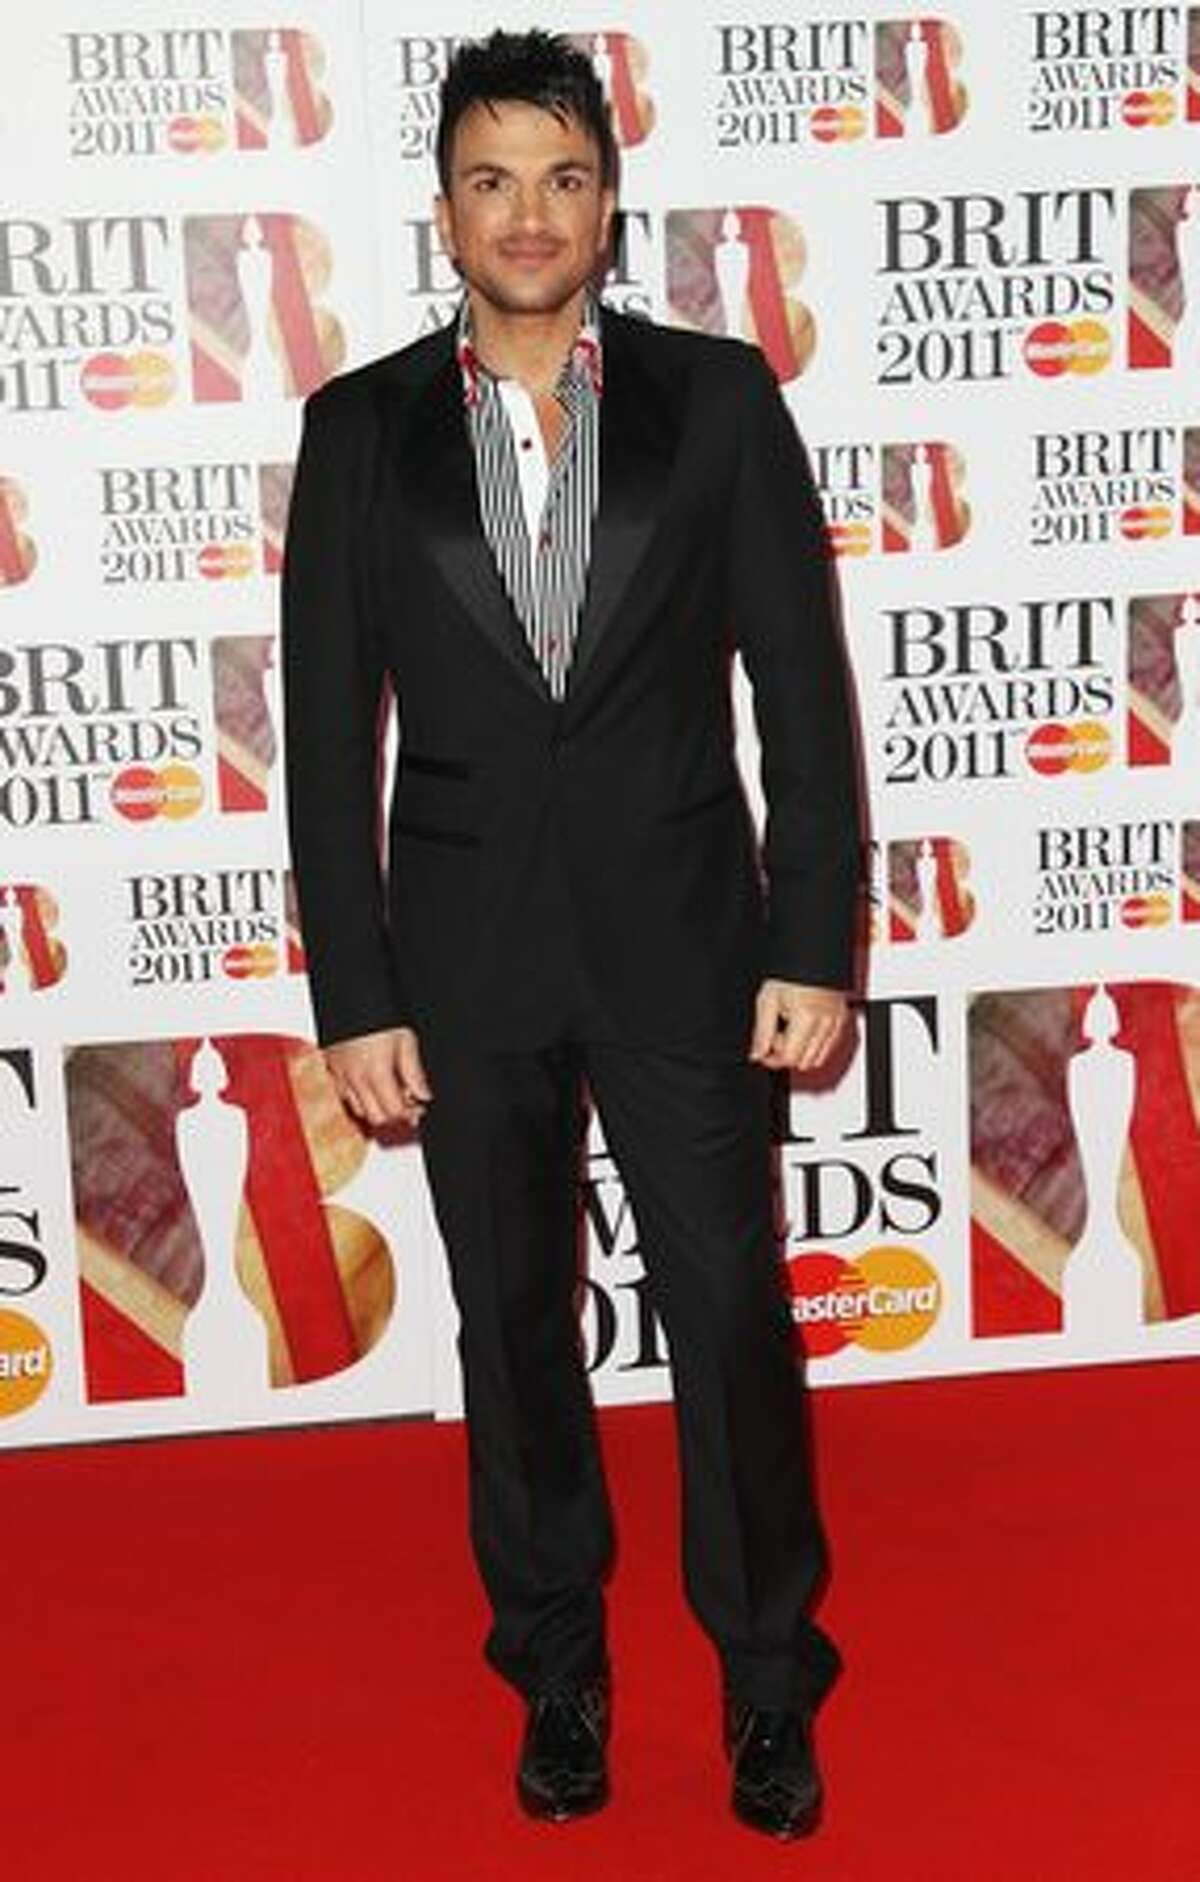 Peter Andre attends The Brit Awards 2011 held at The O2 Arena in London, England.